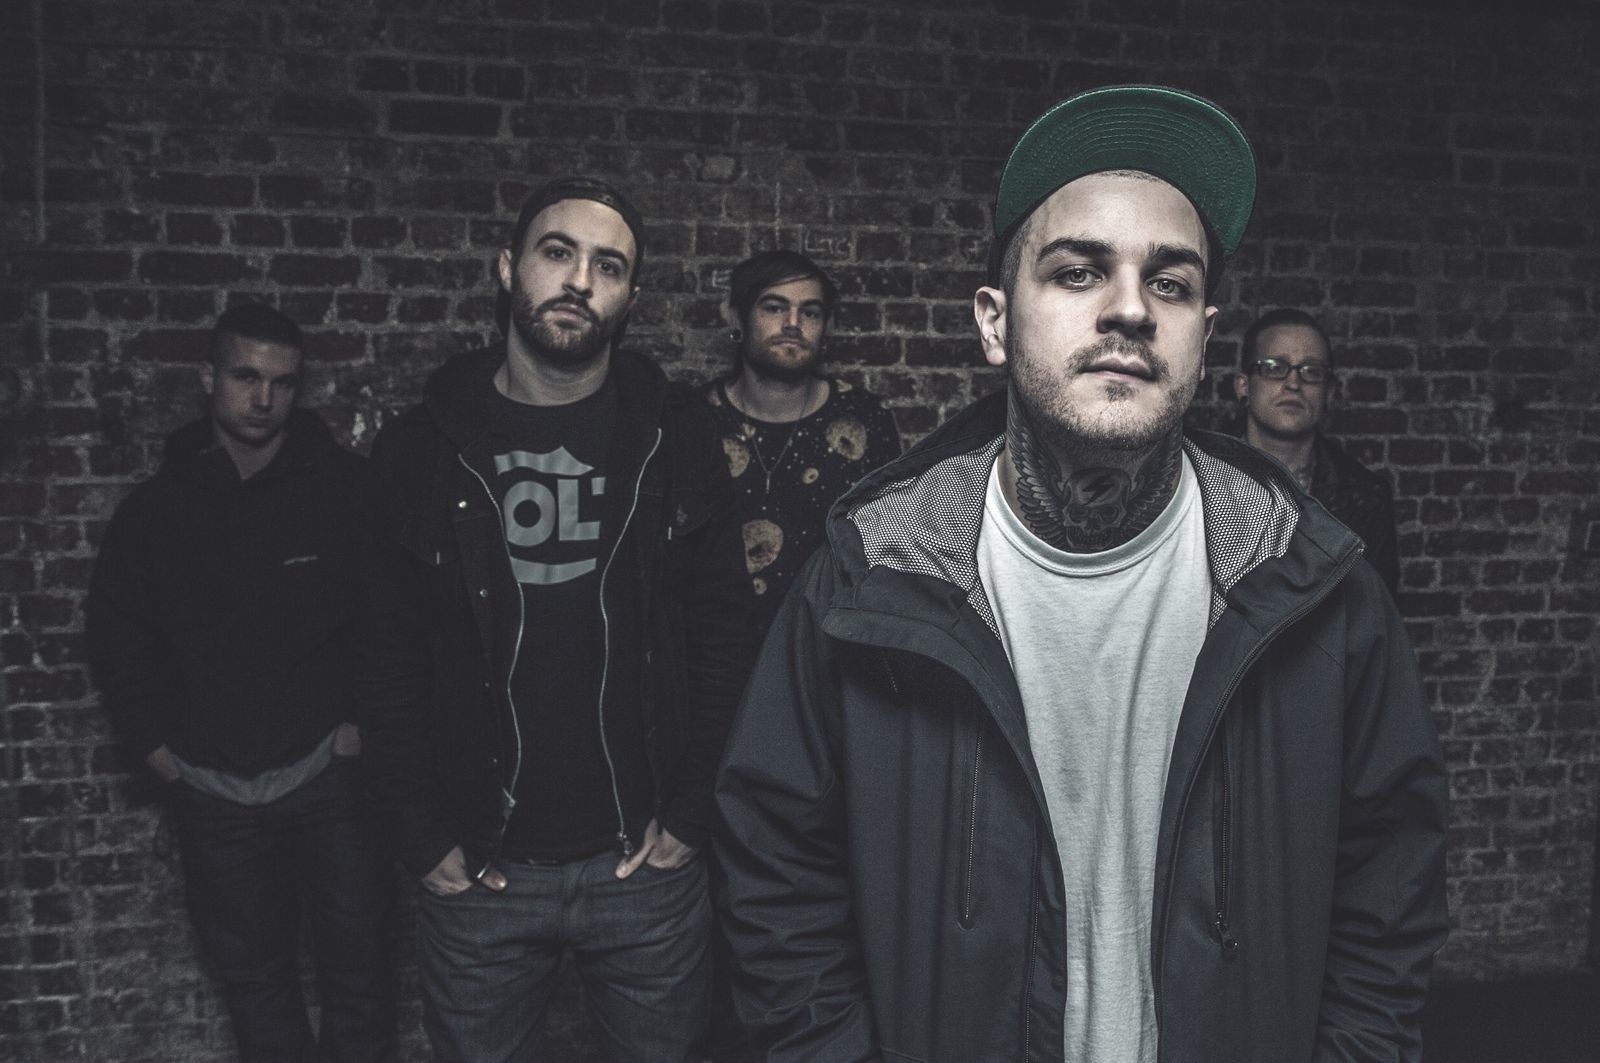 Who is the worst band out of these shit bands